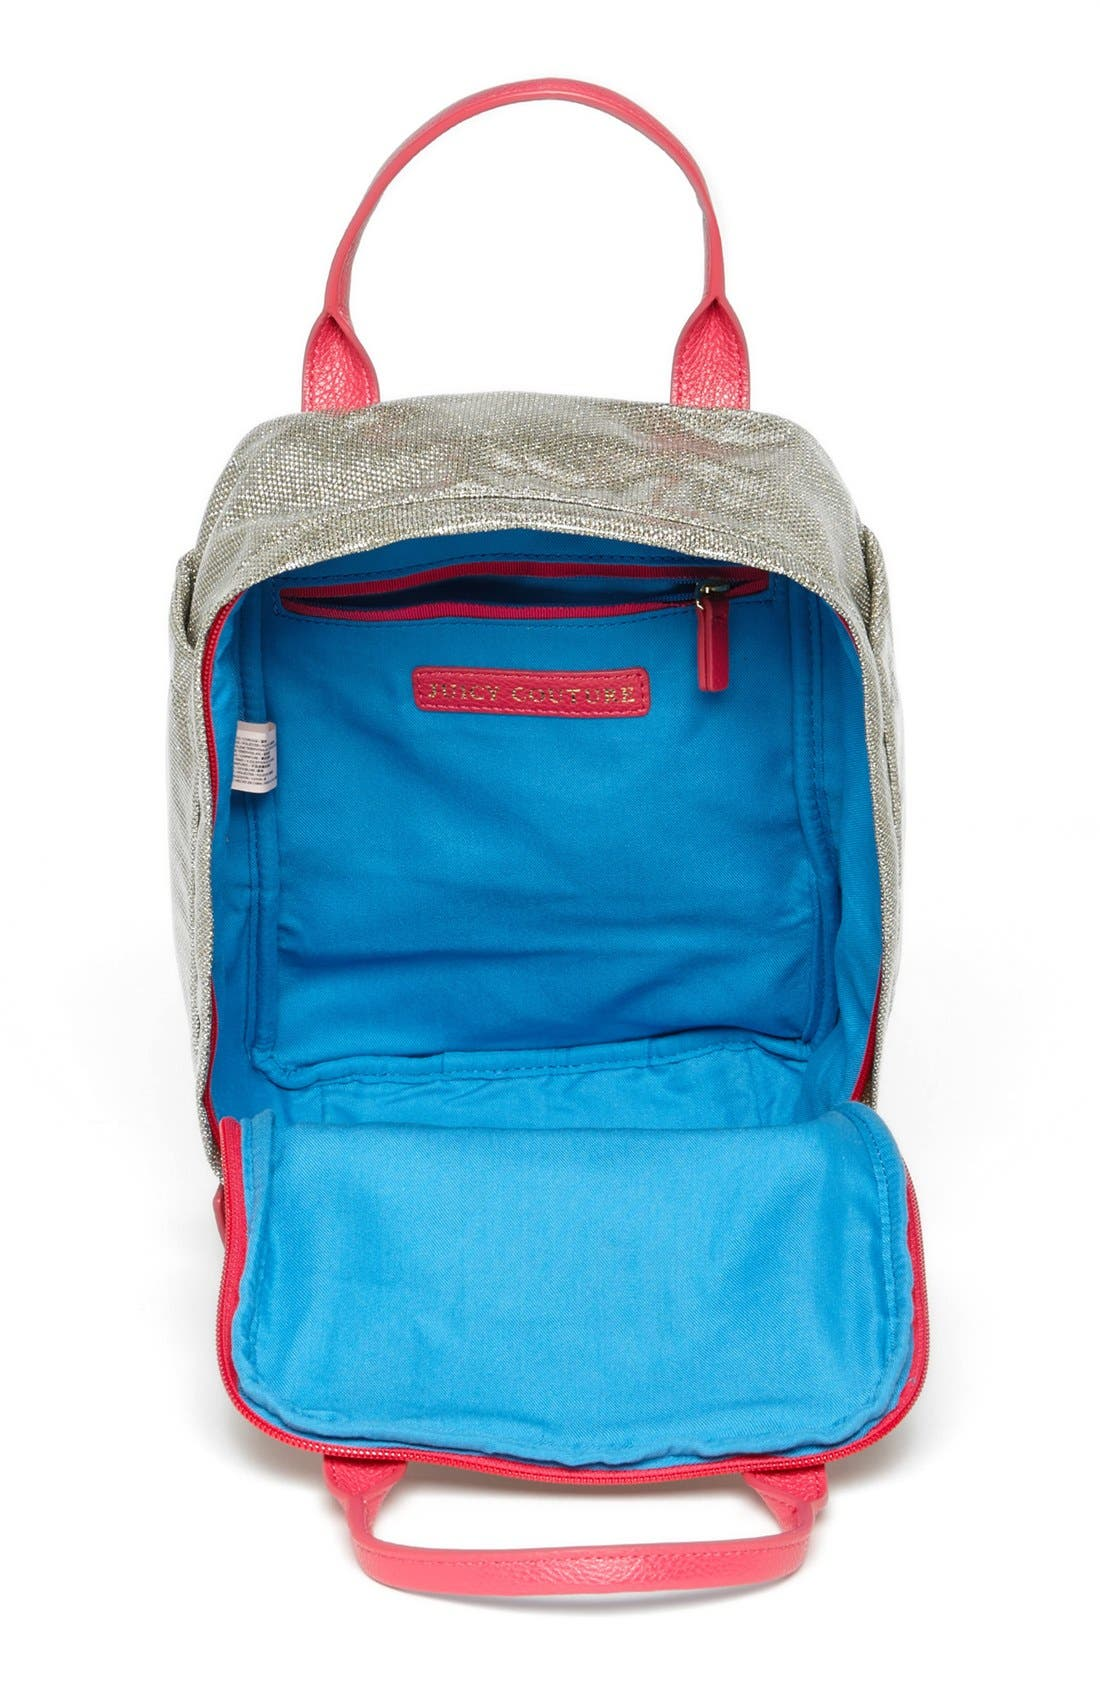 Alternate Image 3  - Juicy Couture 'Bright Diamond' Backpack (Girls)